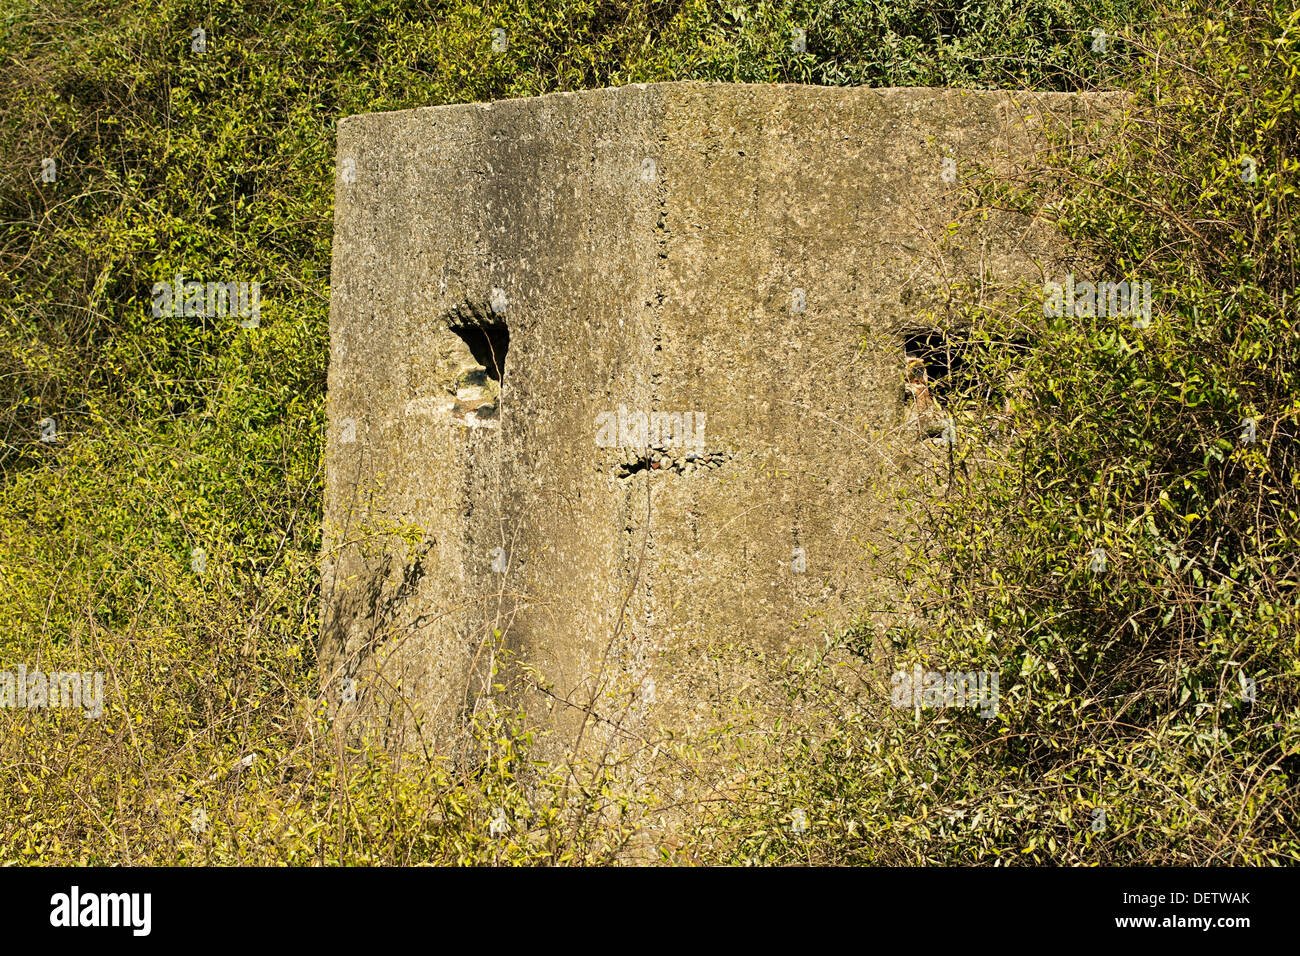 Old ruin of a an allied world war two bunker in the uk commonly called a pillbox - Stock Image